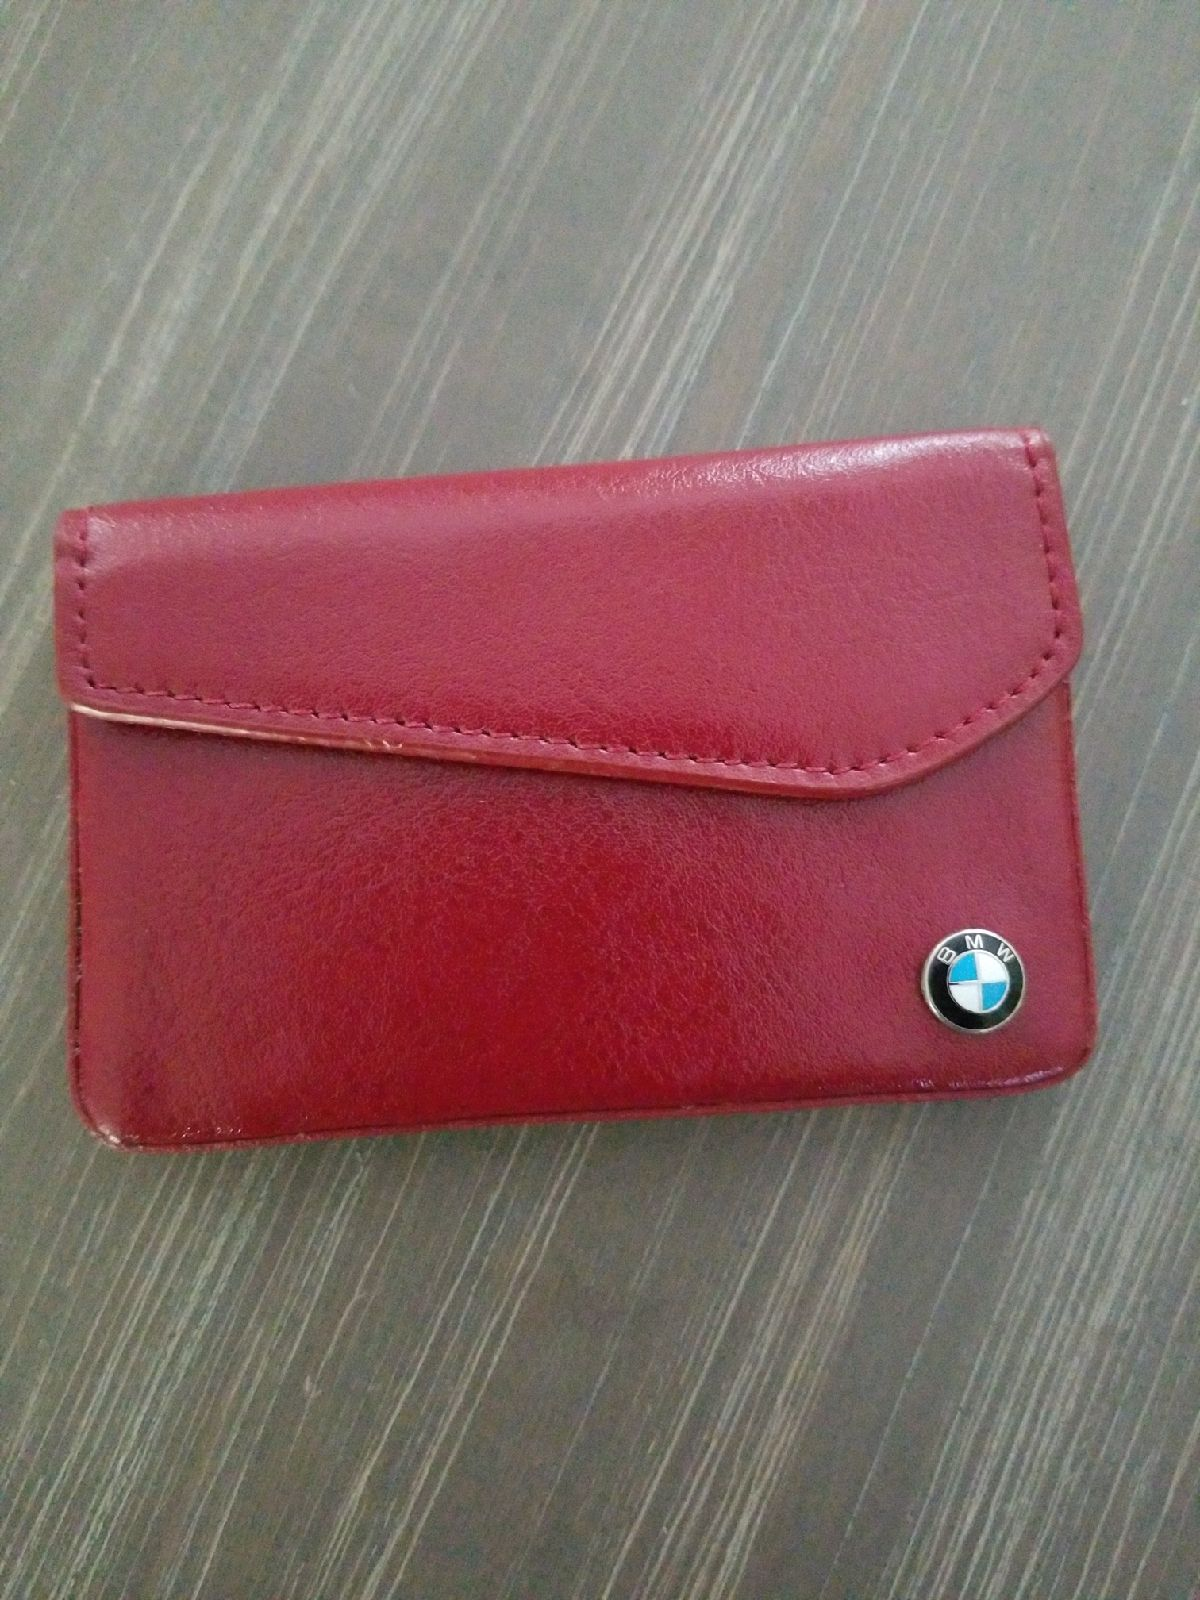 BMW Business Card Holder